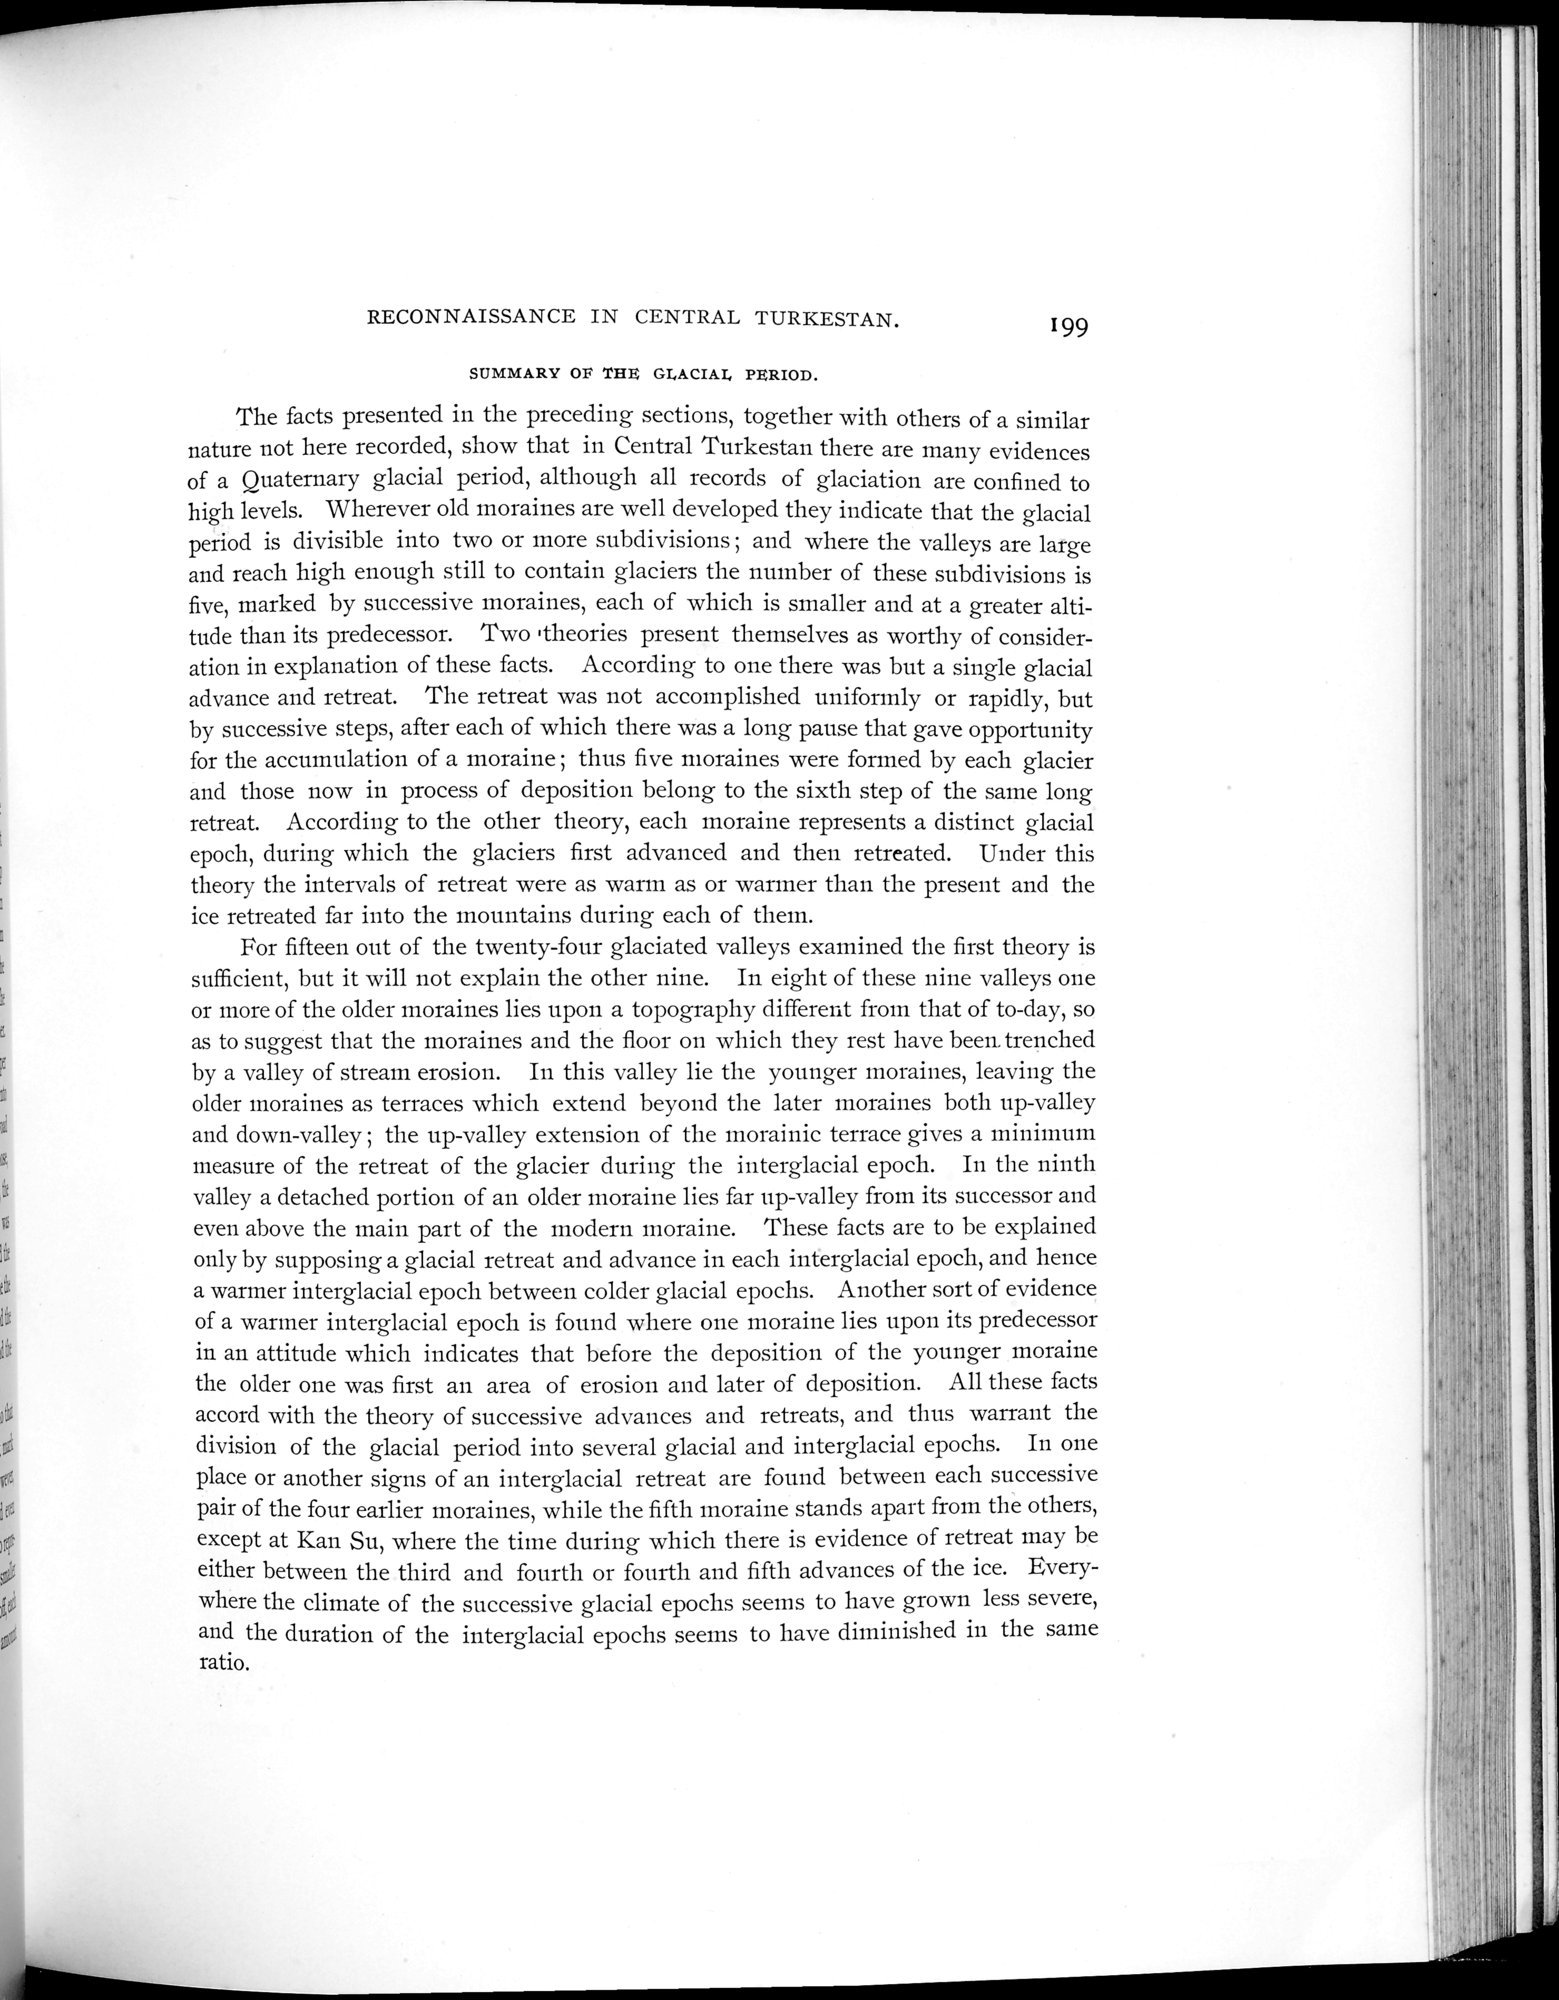 Explorations in Turkestan 1903 : vol.1 / Page 229 (Grayscale High Resolution Image)